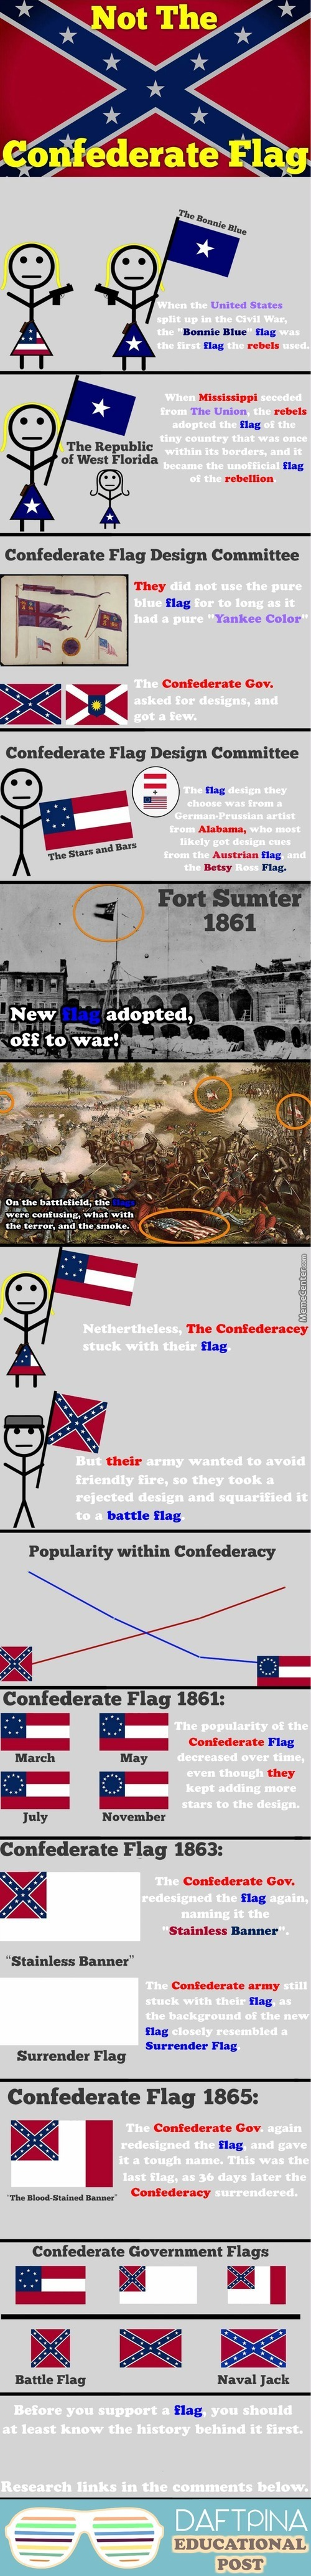 Not The Confederate Flag.